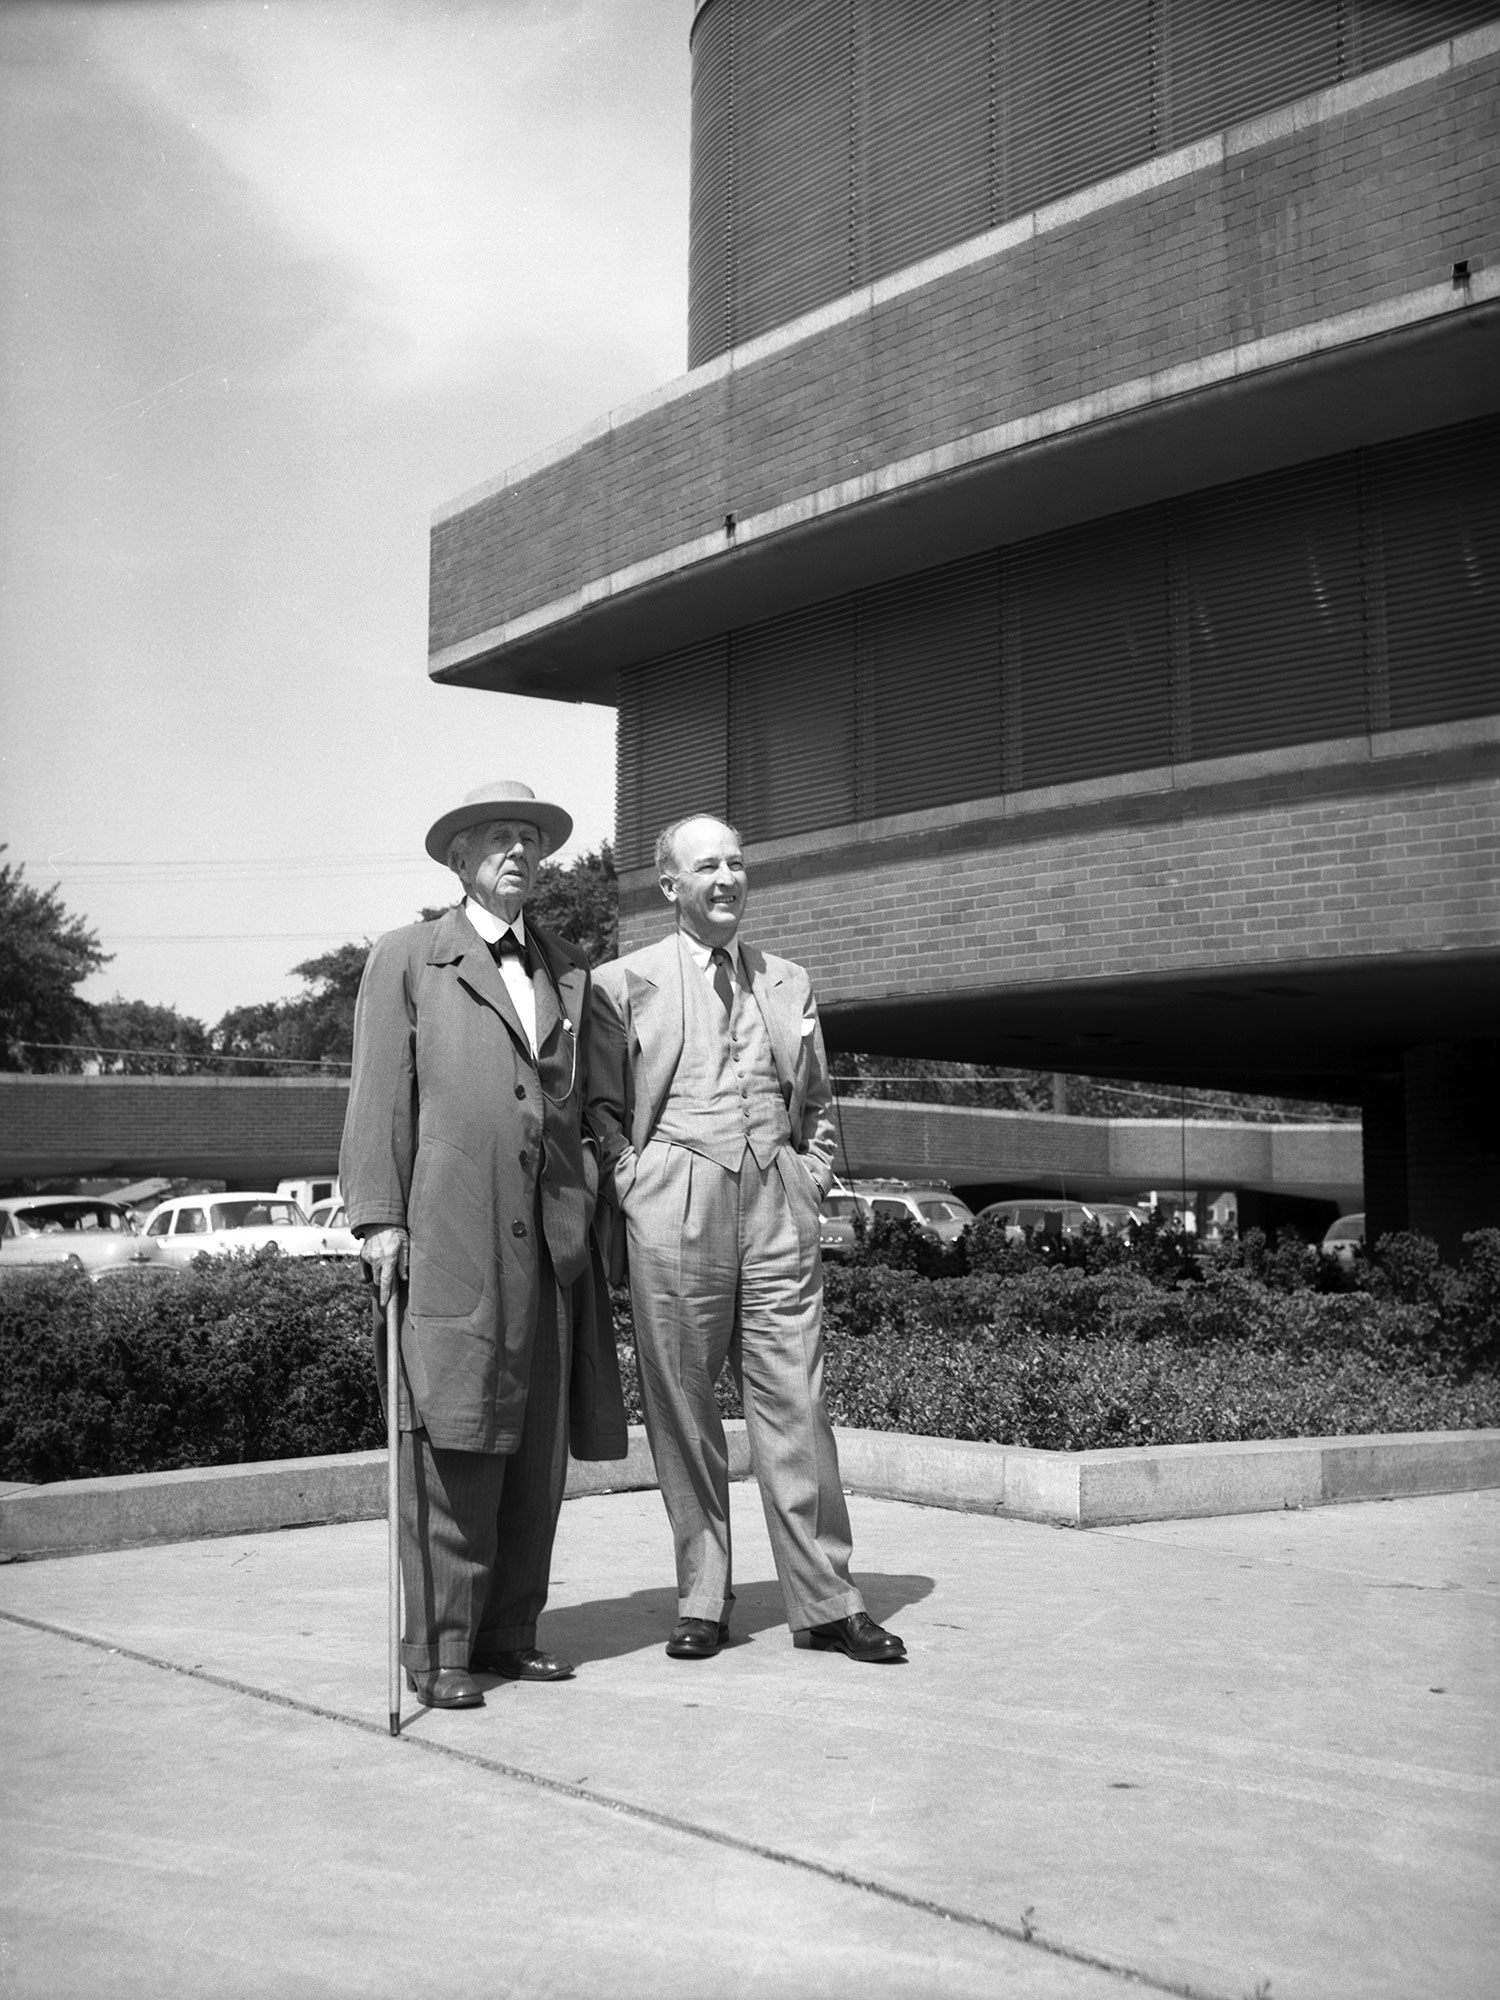 HF Johnson Jr bersama Frank Lloyd Wright